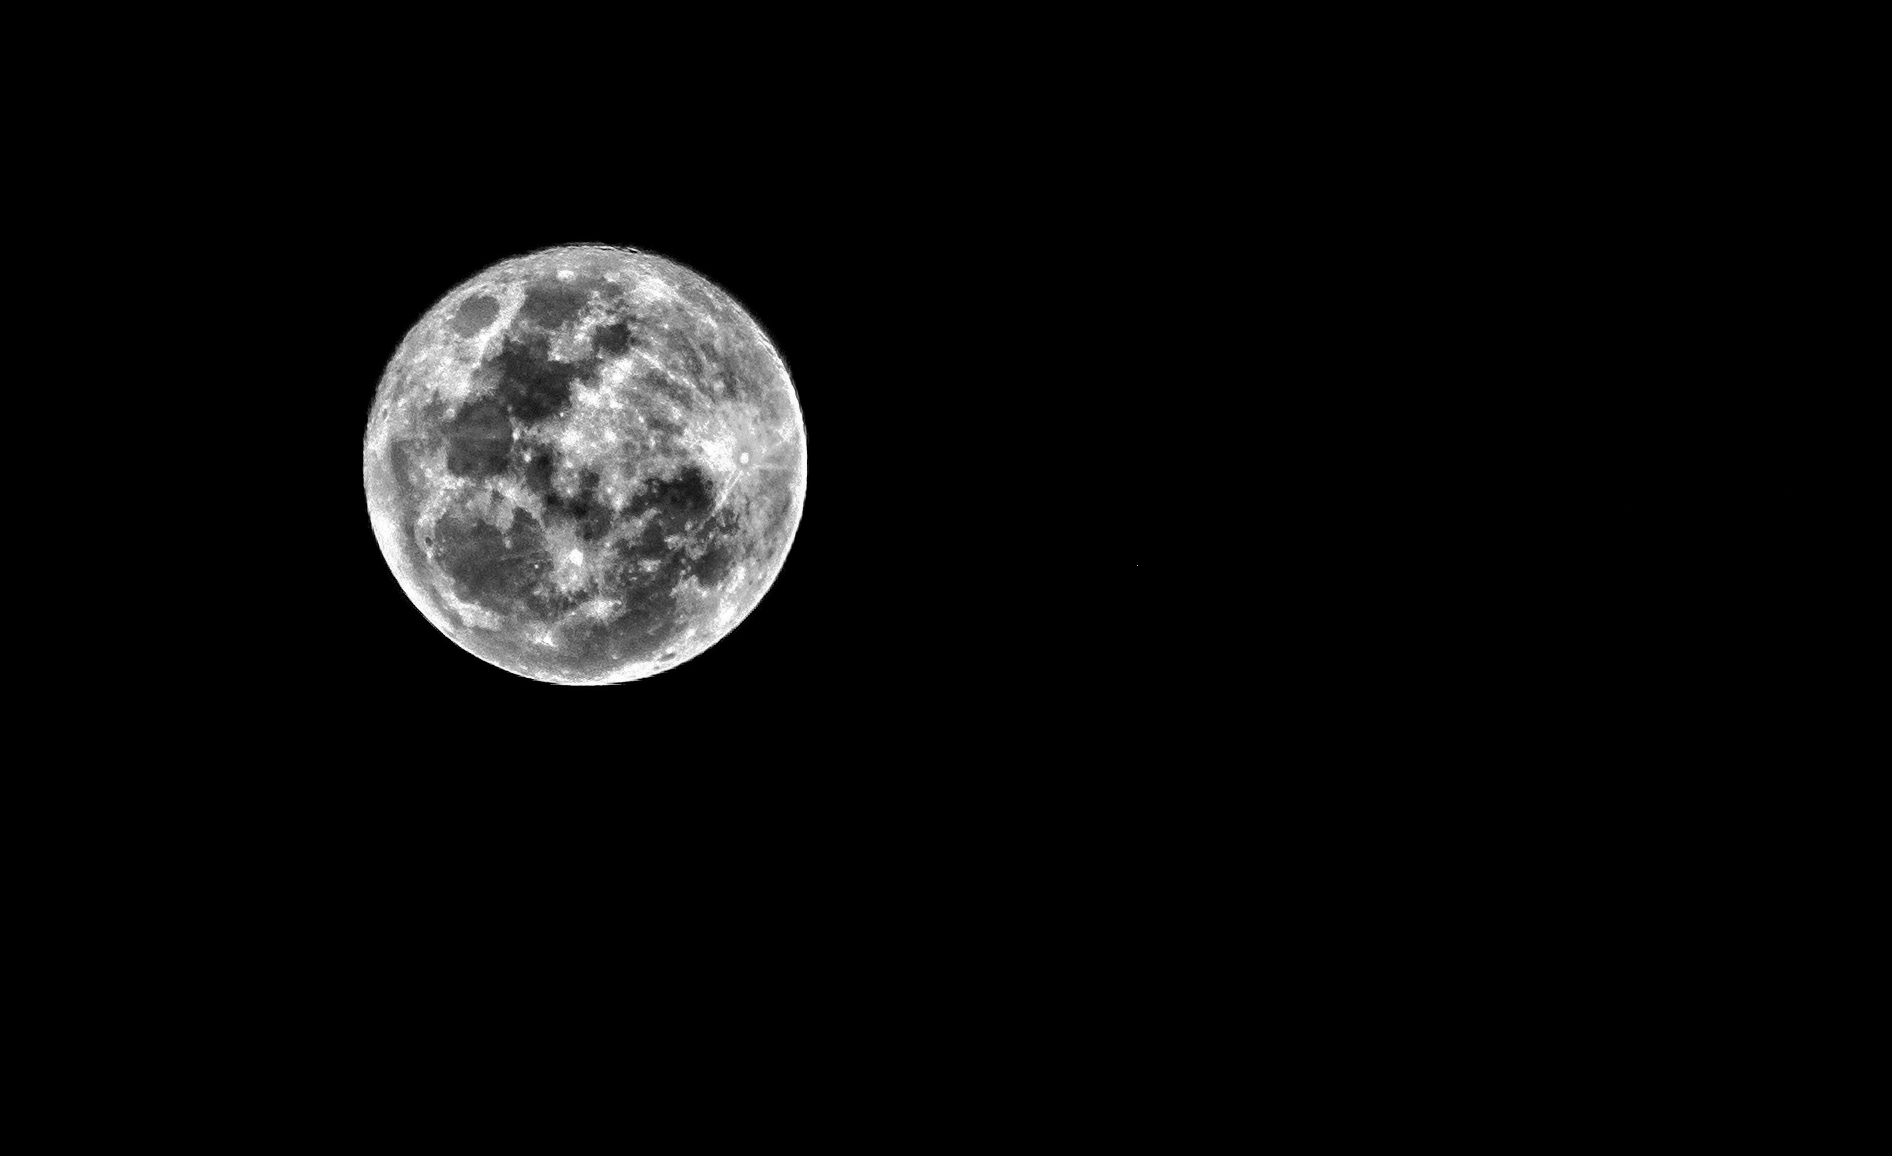 Moon Photography Tutorial: Capture Surface Details With a 55-200mm Lens